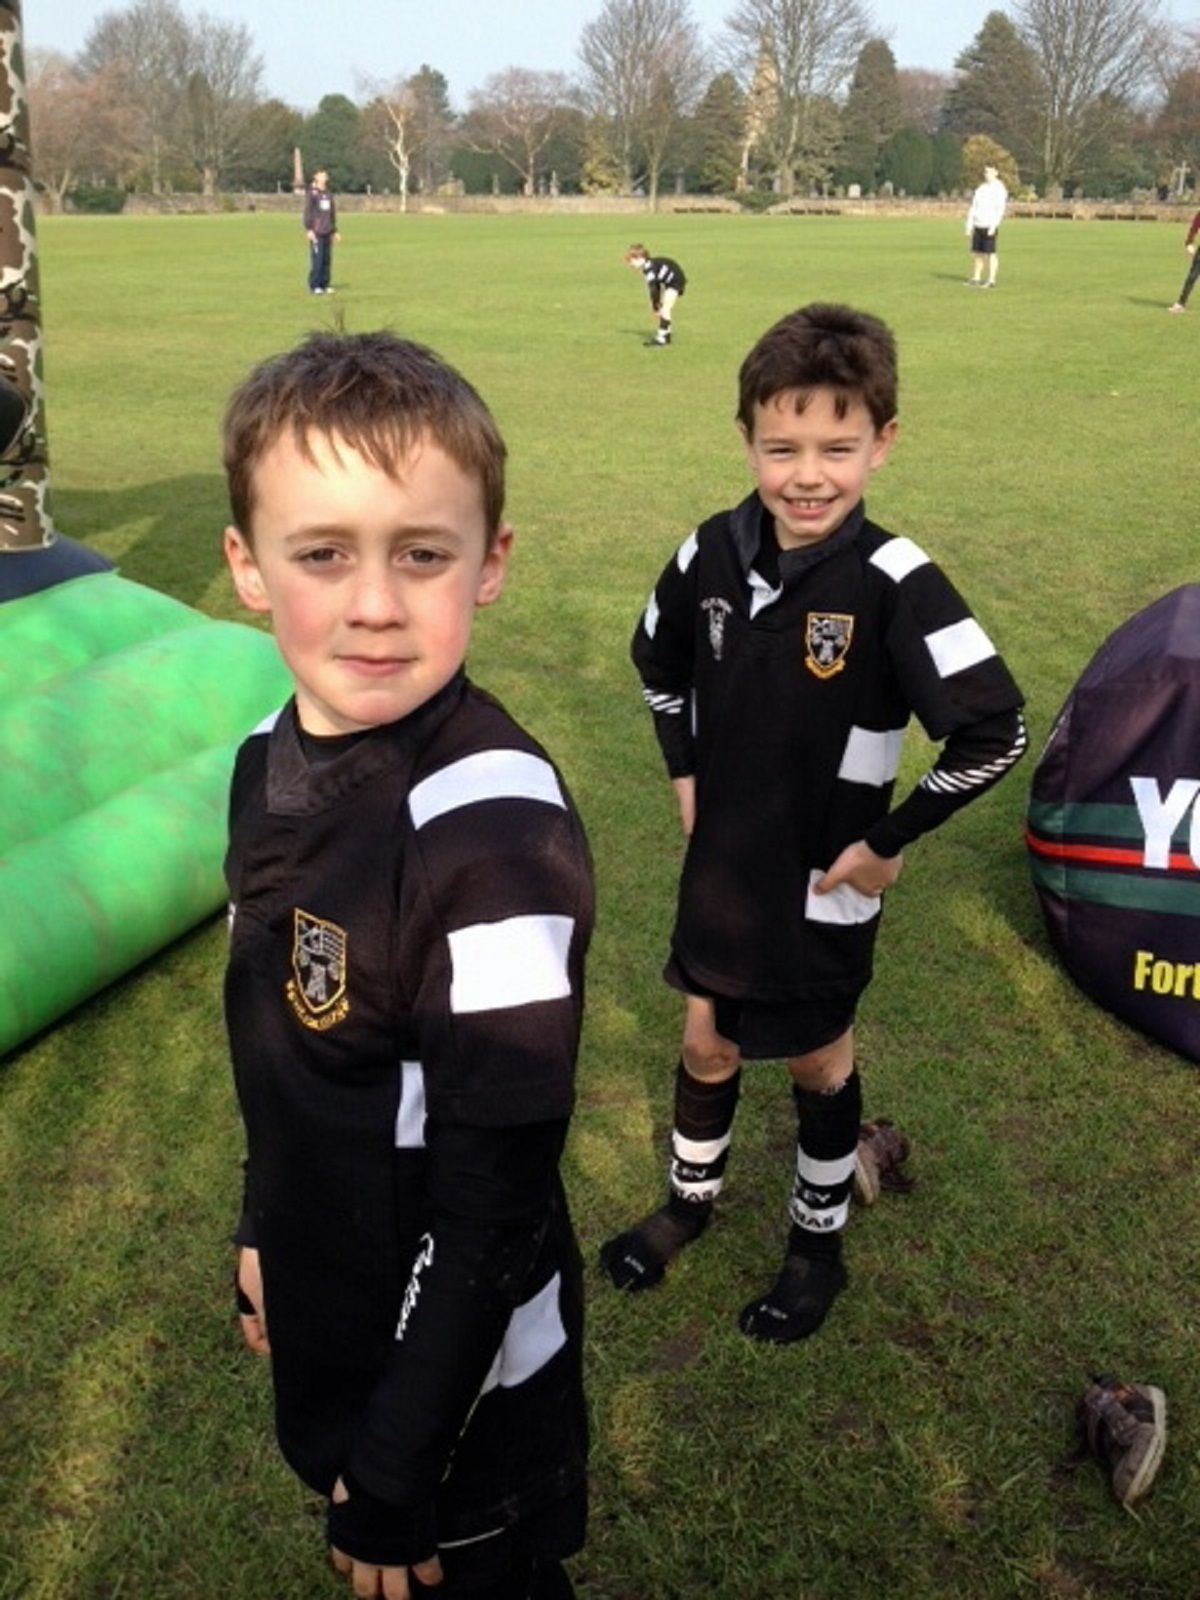 A pair of young players enjoying themselves at the rugby club's open day